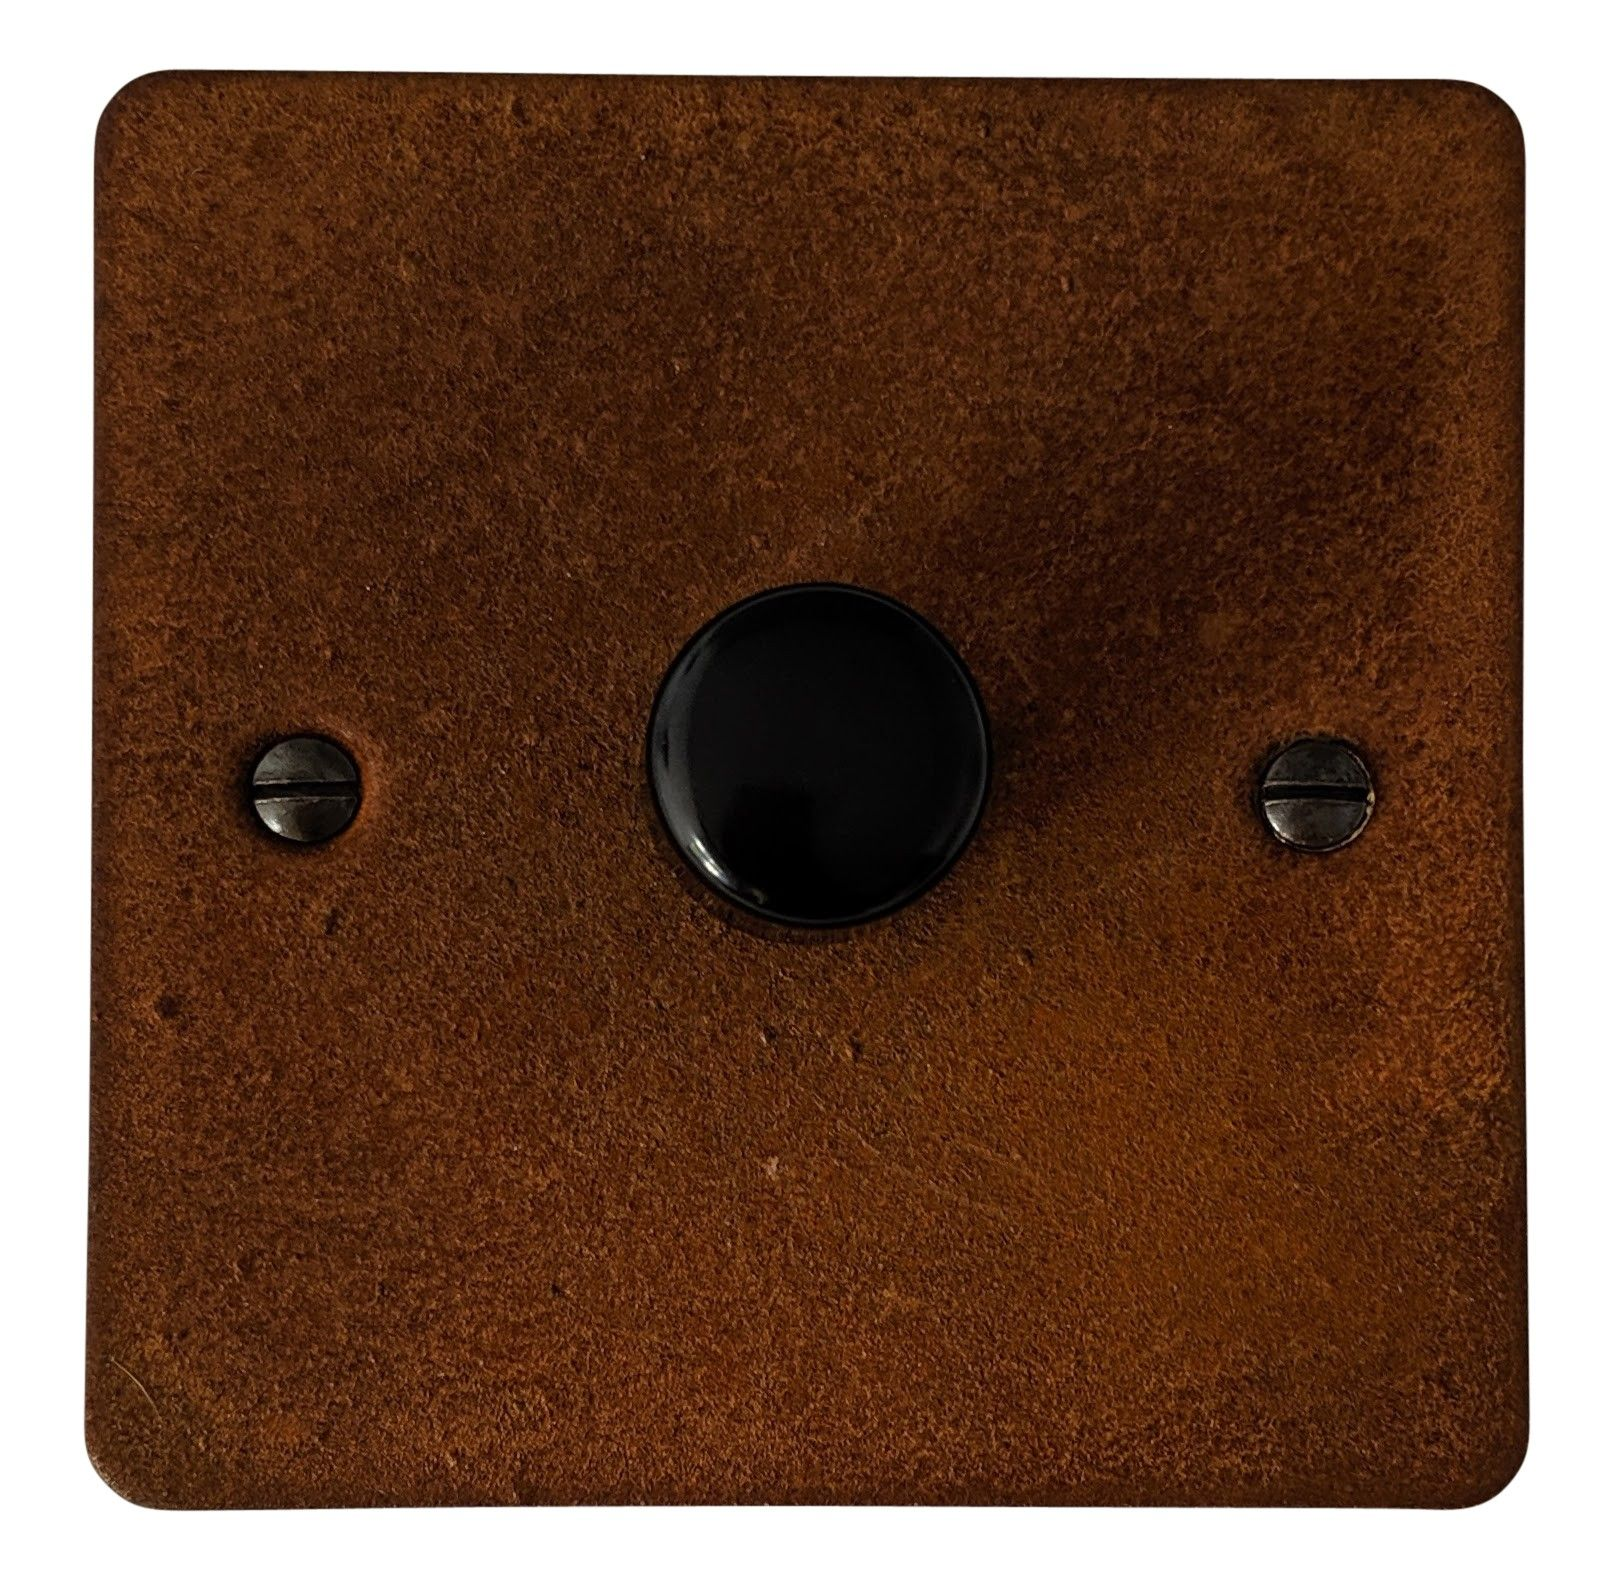 G&H FRT11 Flat Plate Rust 1 Gang 1 or 2 Way 40-400W Dimmer Switch